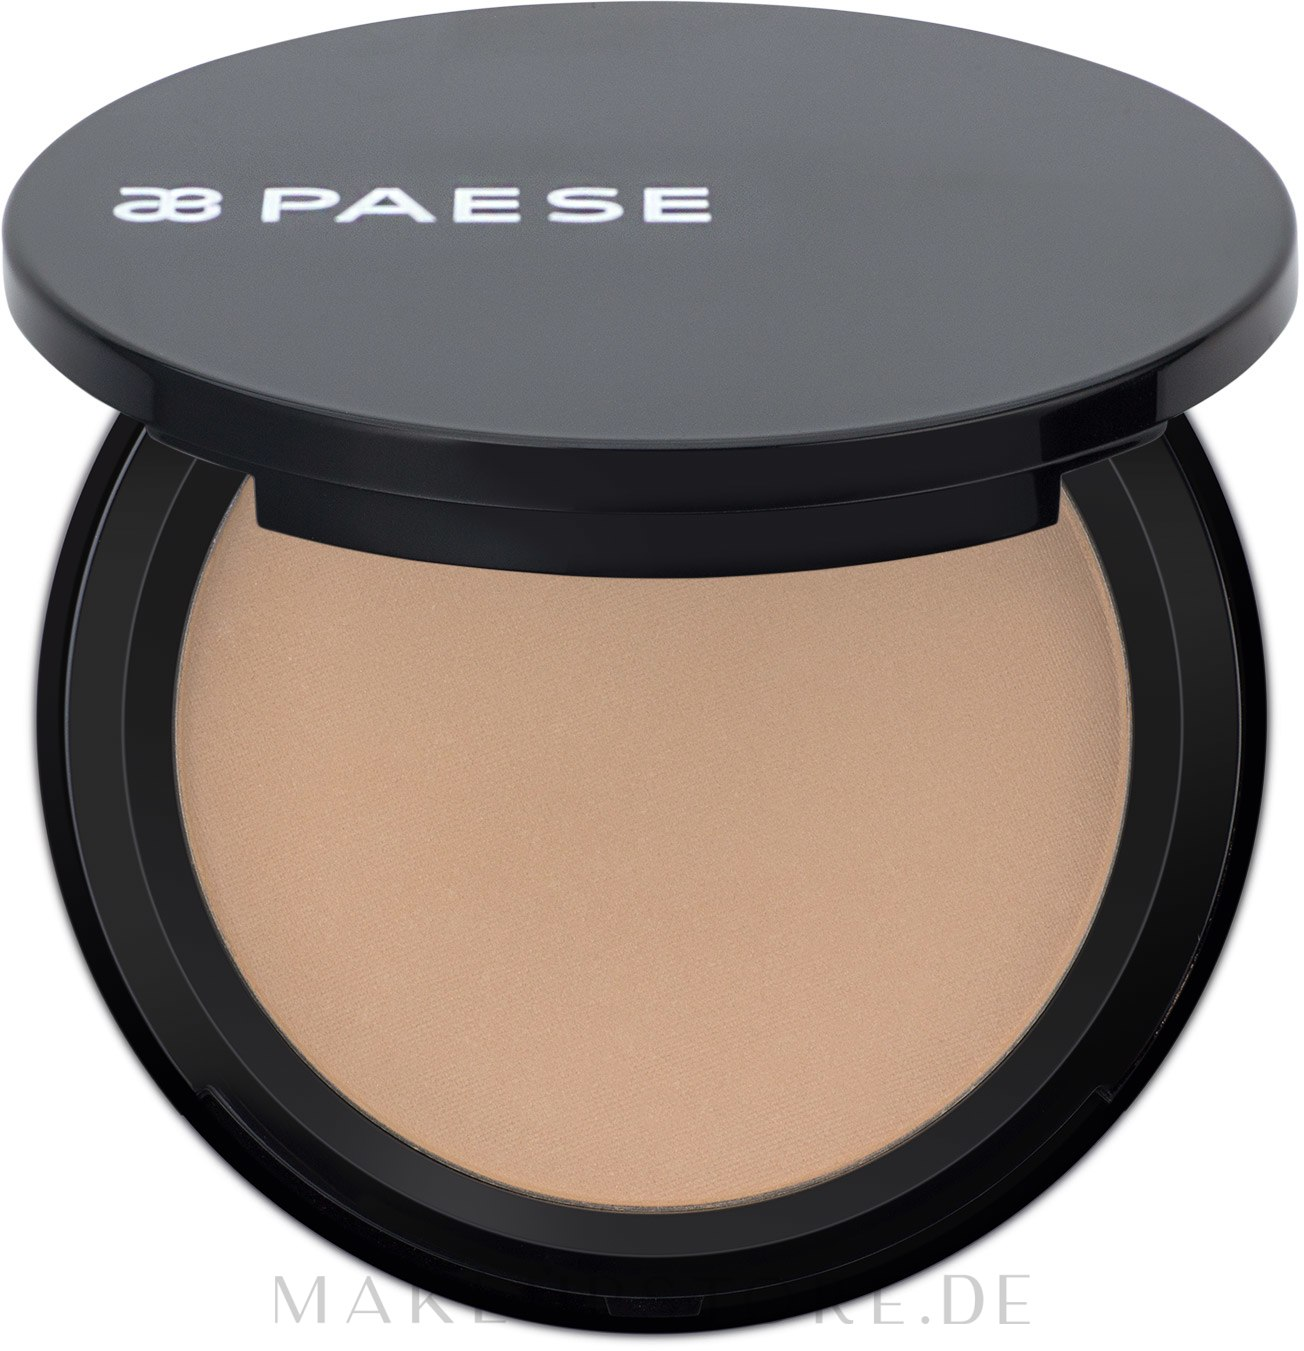 Kompaktpuder - Paese Matter Powder Semitransparent (1A-Warmes Beige) — Bild 1A - Ciep³y be¿